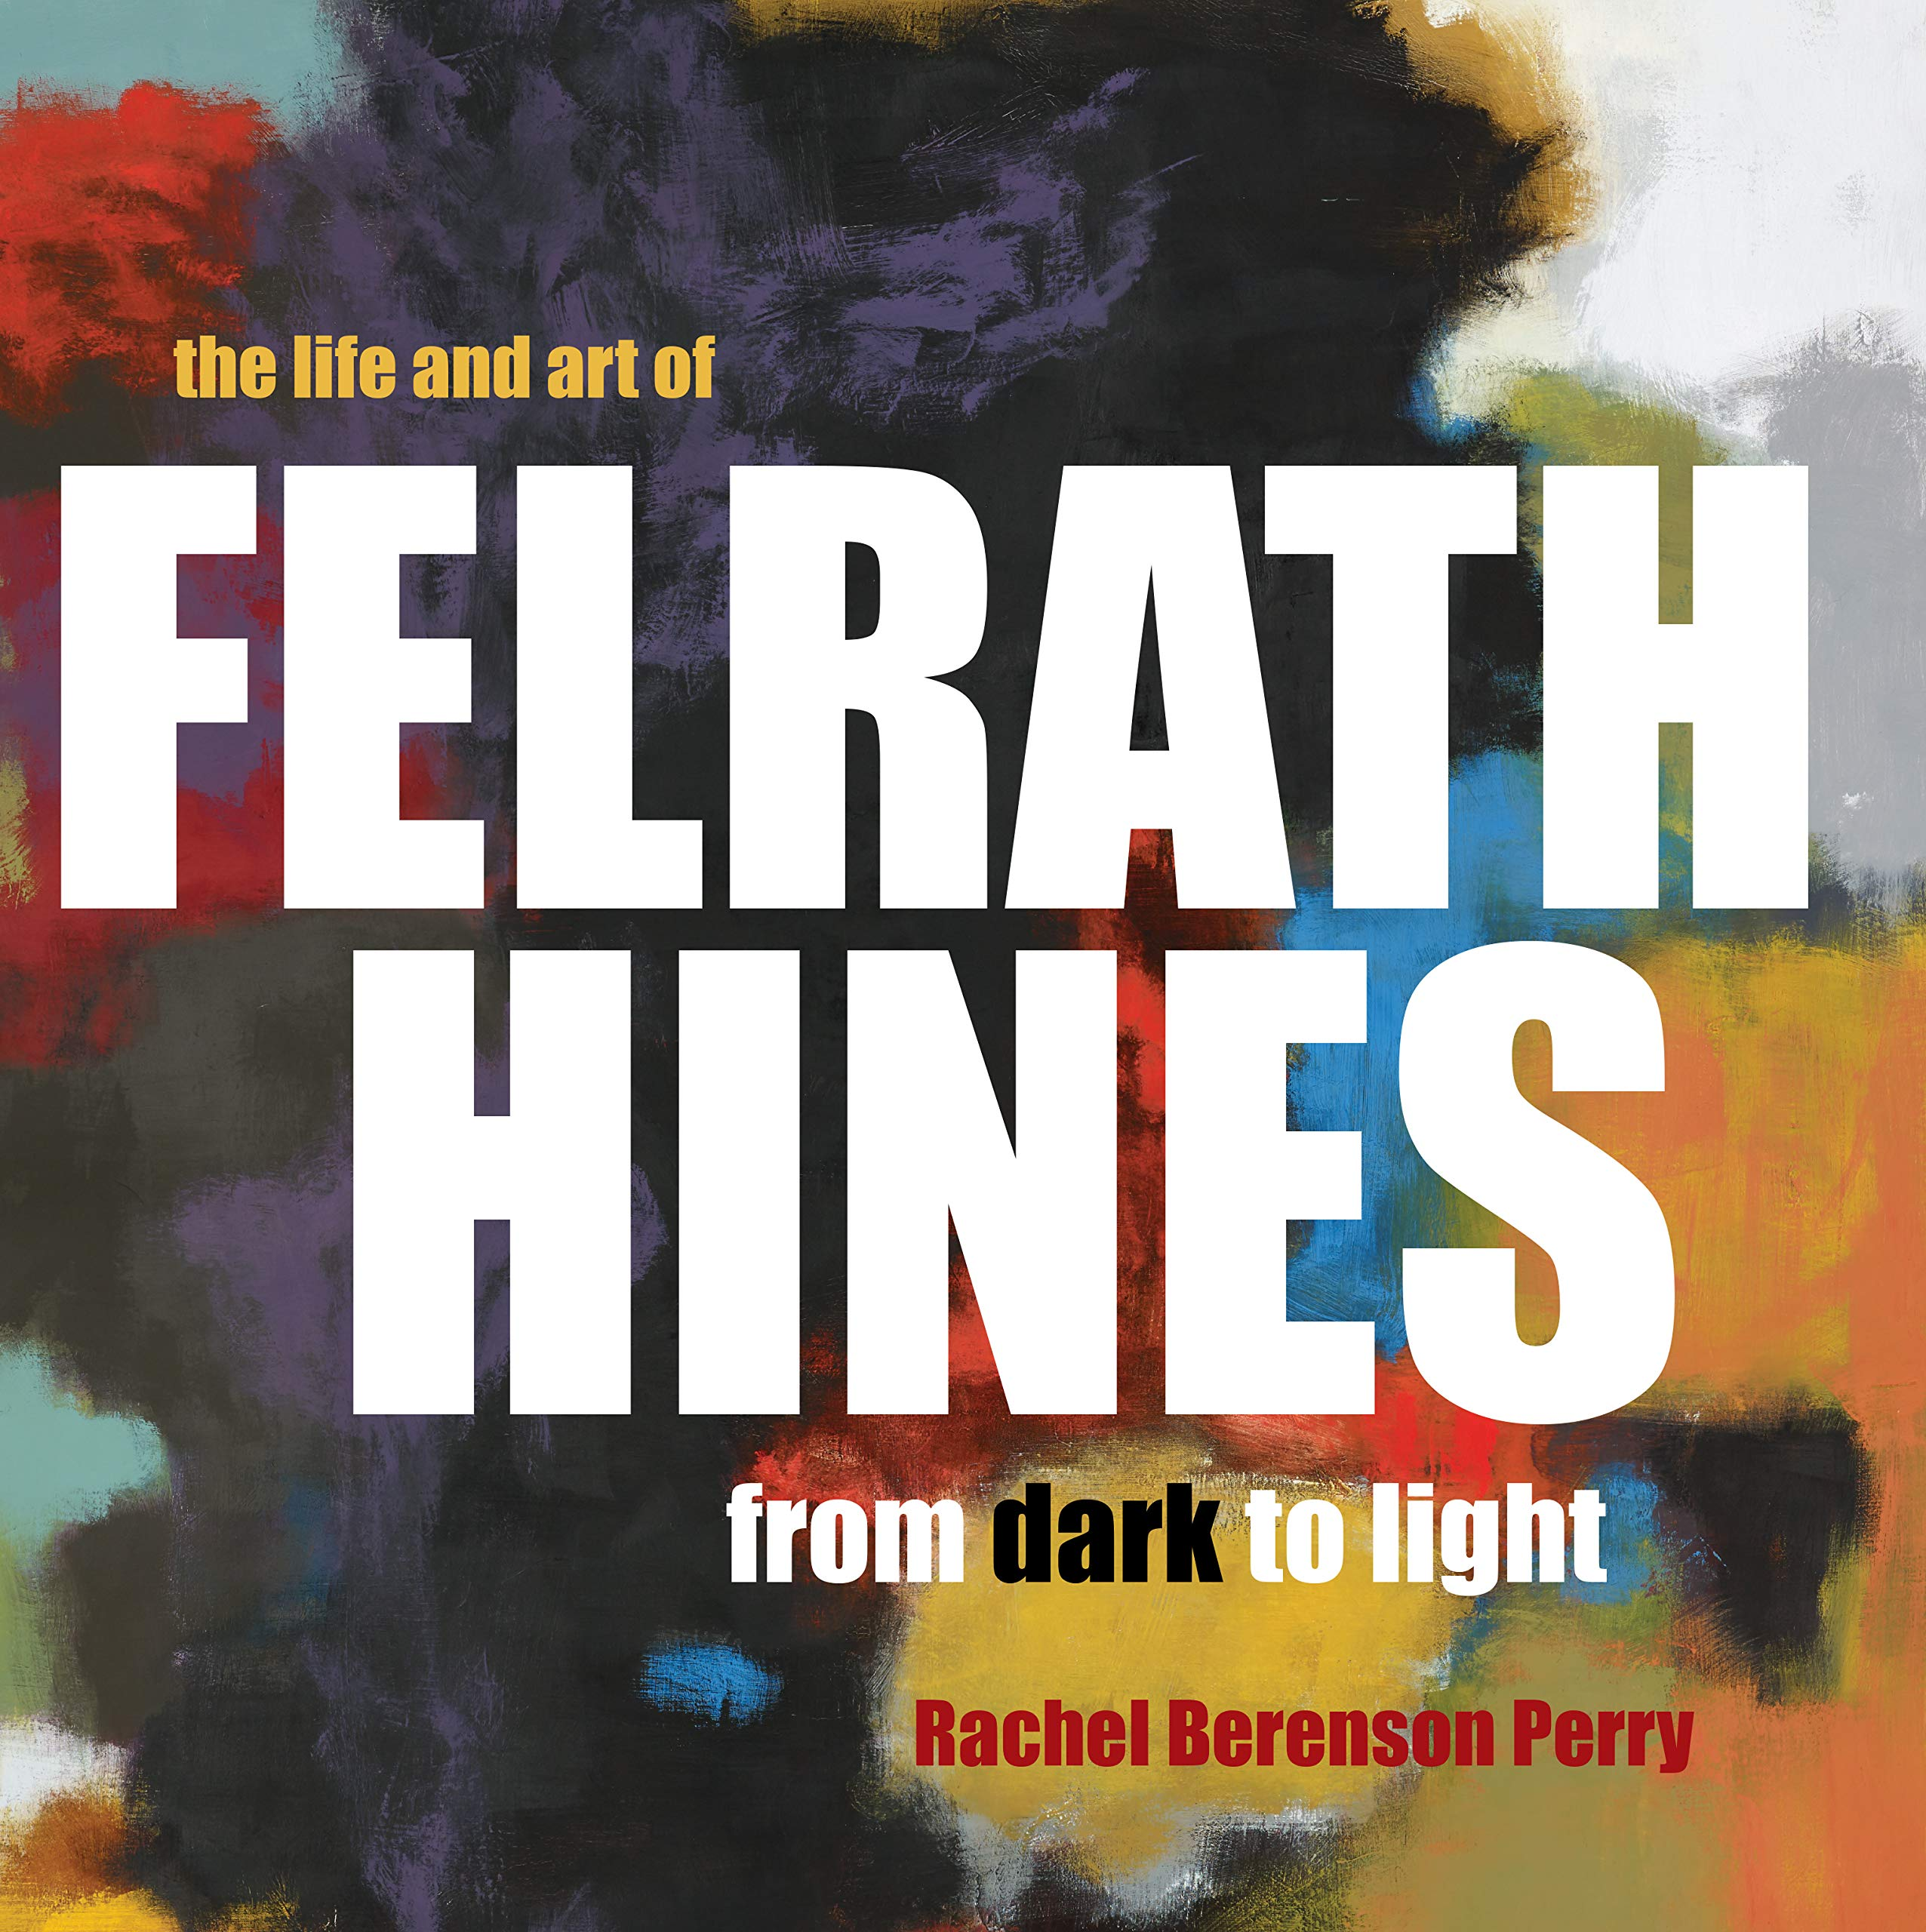 Rachel Berenson Perry's new book illuminates Hines' struggles and ultimate aesthetic success as a 20th-century African-American artist.